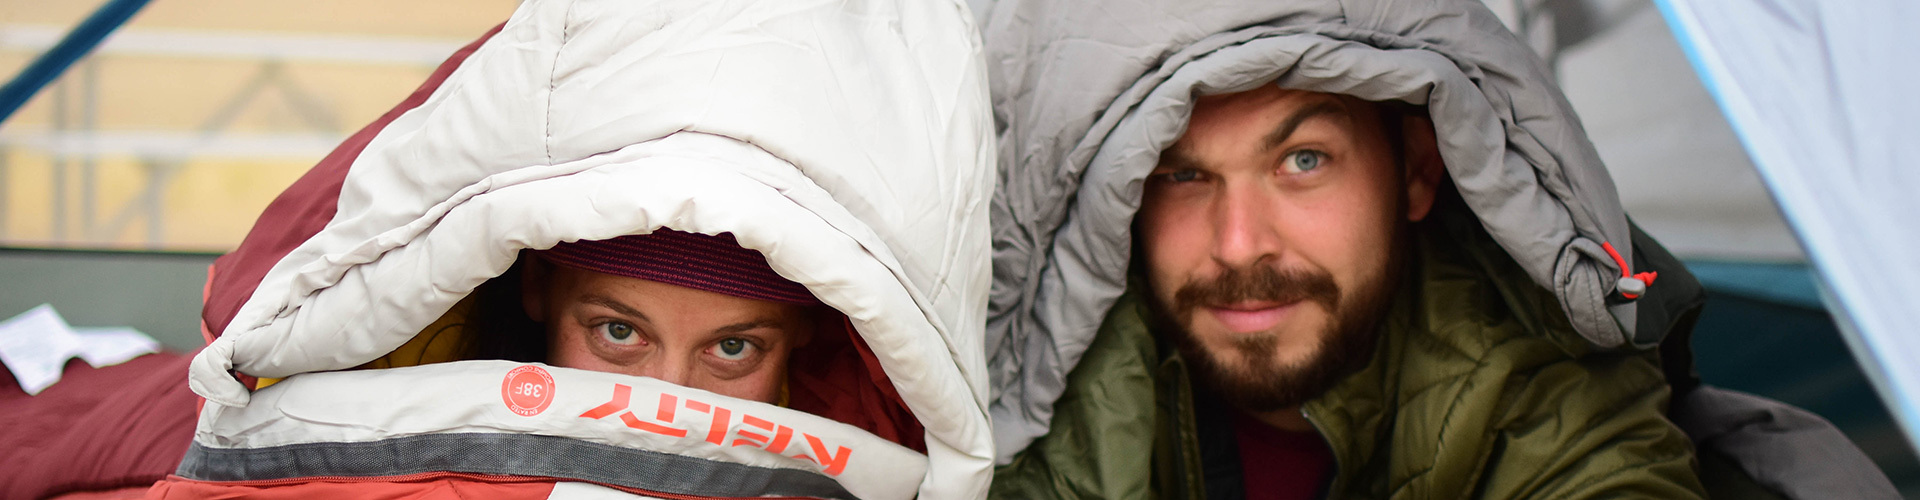 Man and woman peeking out of Kelty sleeping bags